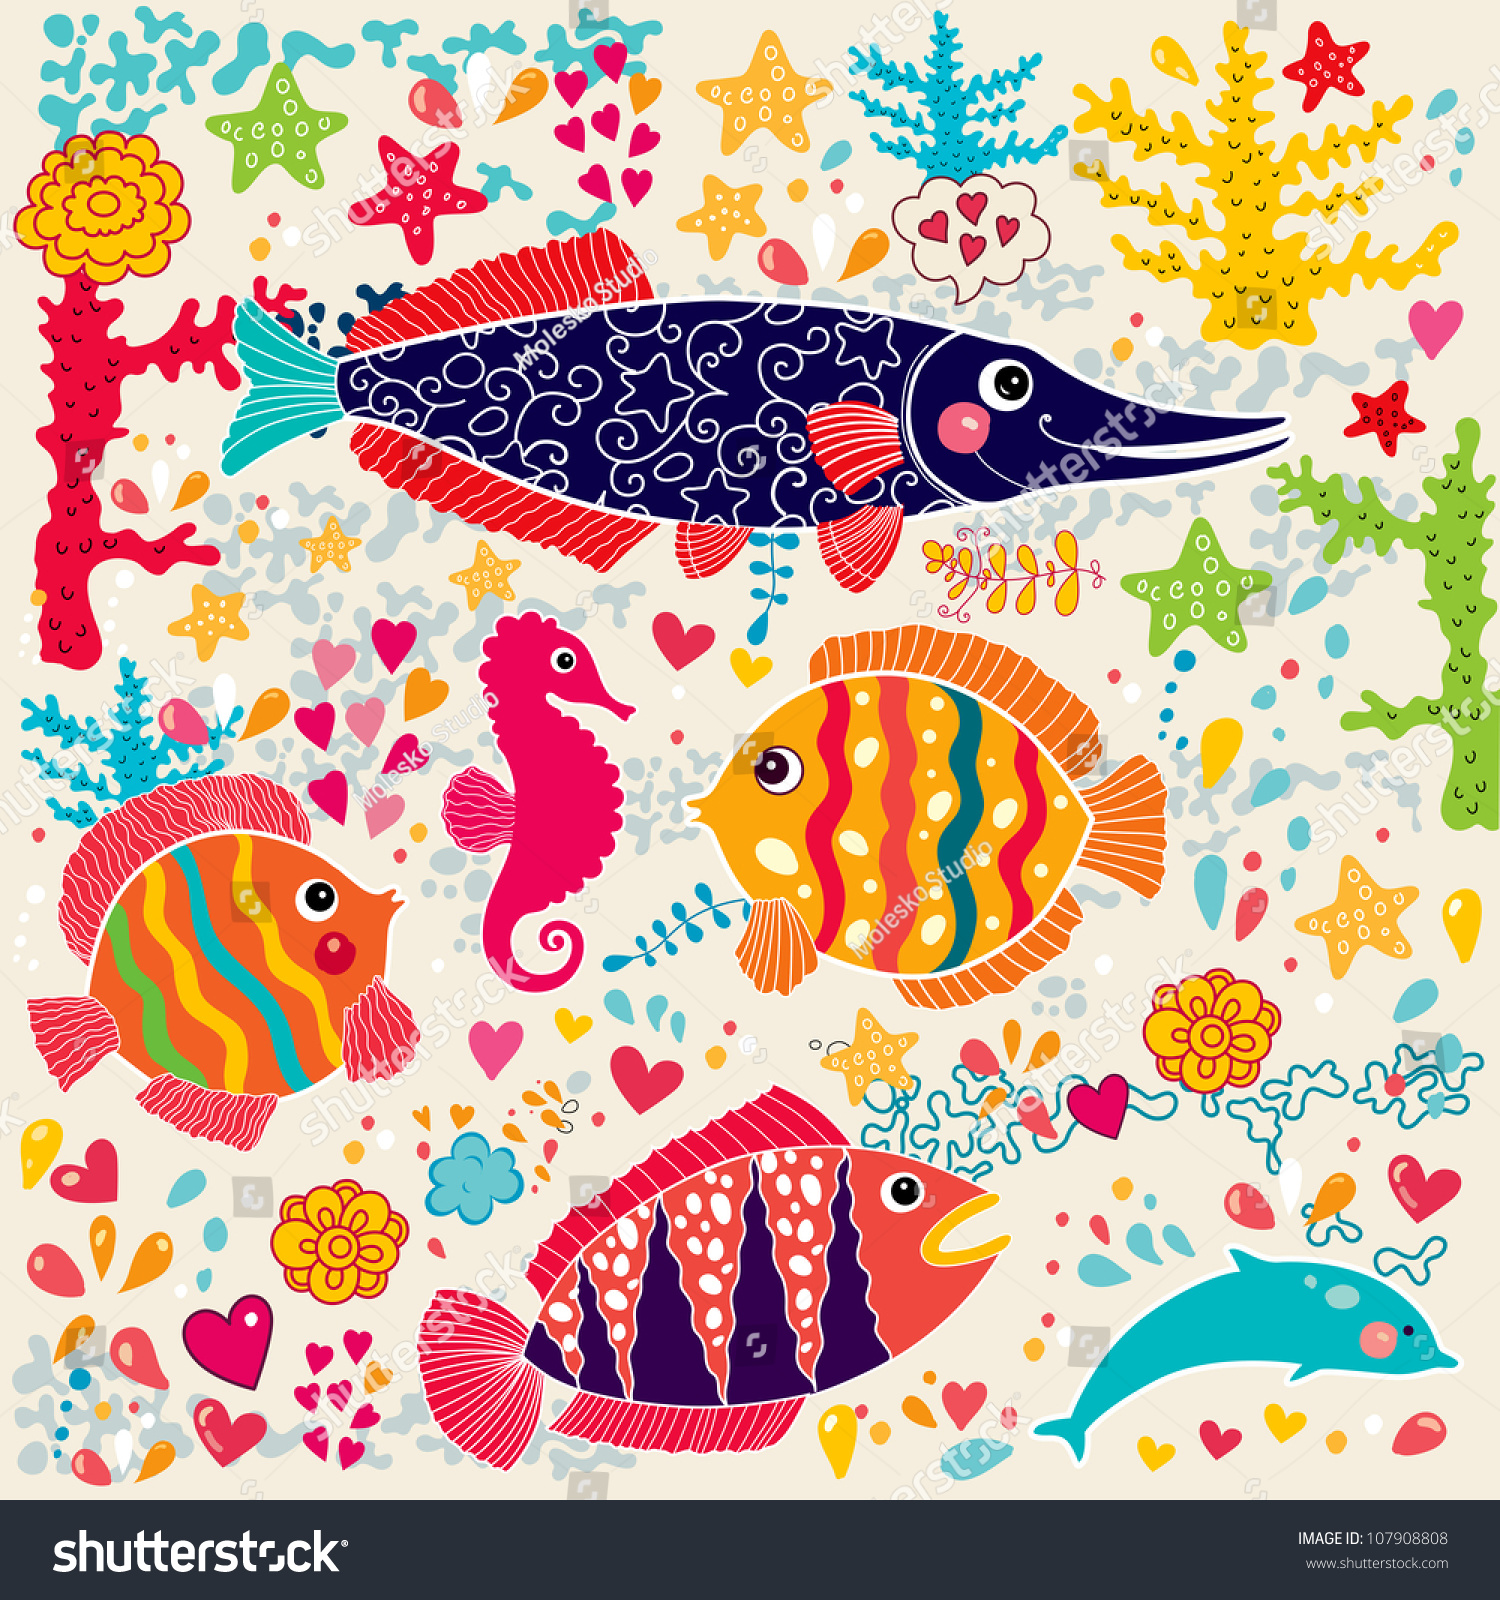 The wallpaper coloring book - Vector Wallpaper With Fish And Marine Life